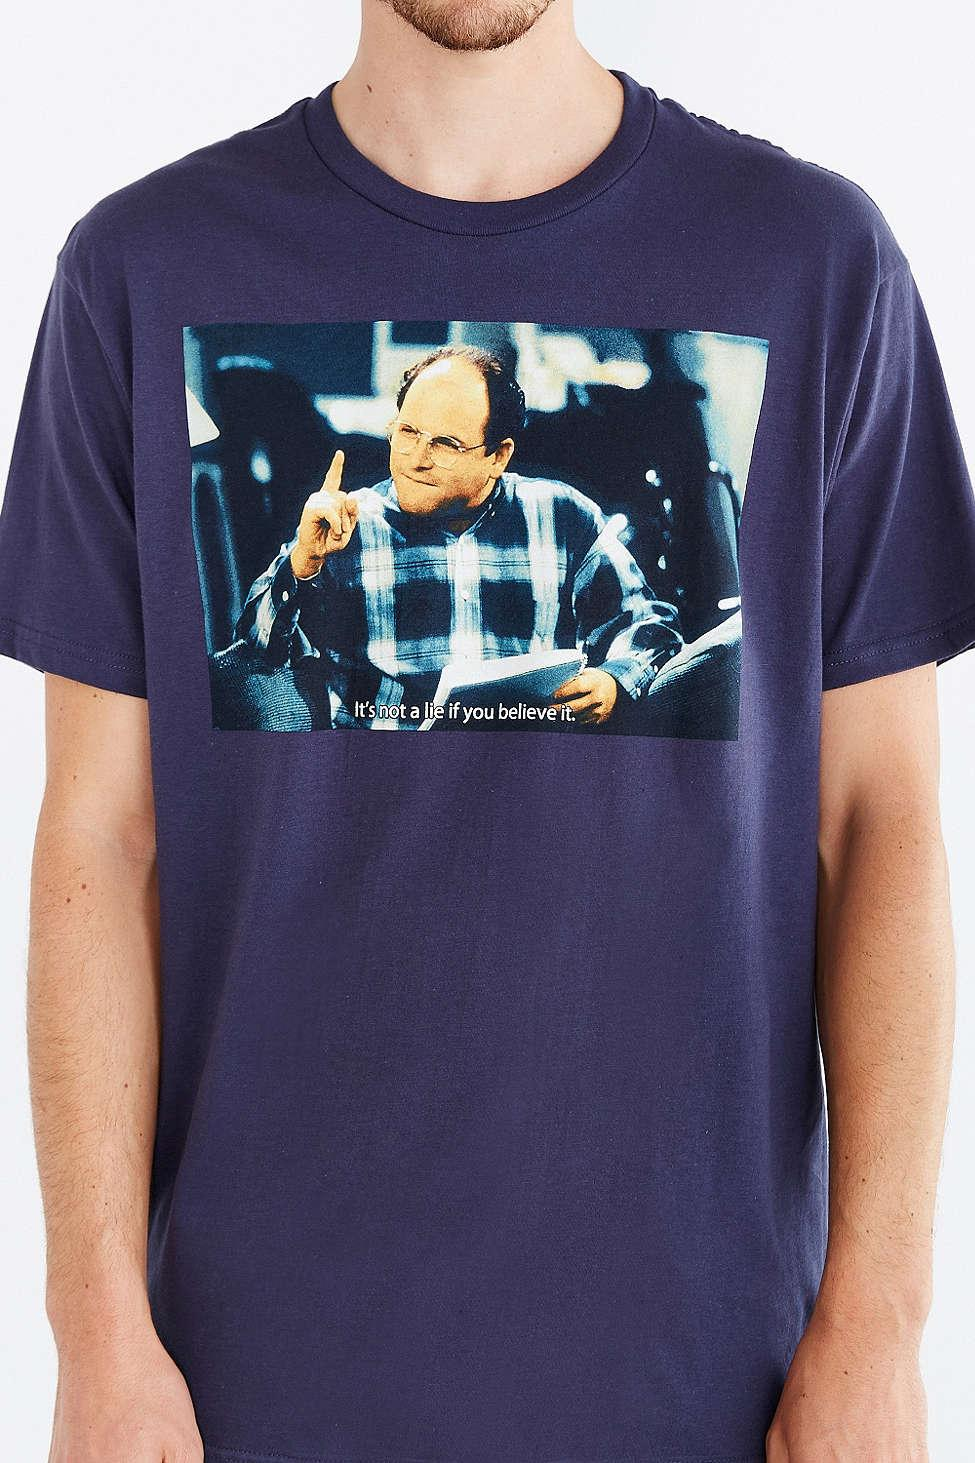 outfitters seinfeld it s not a lie in blue for